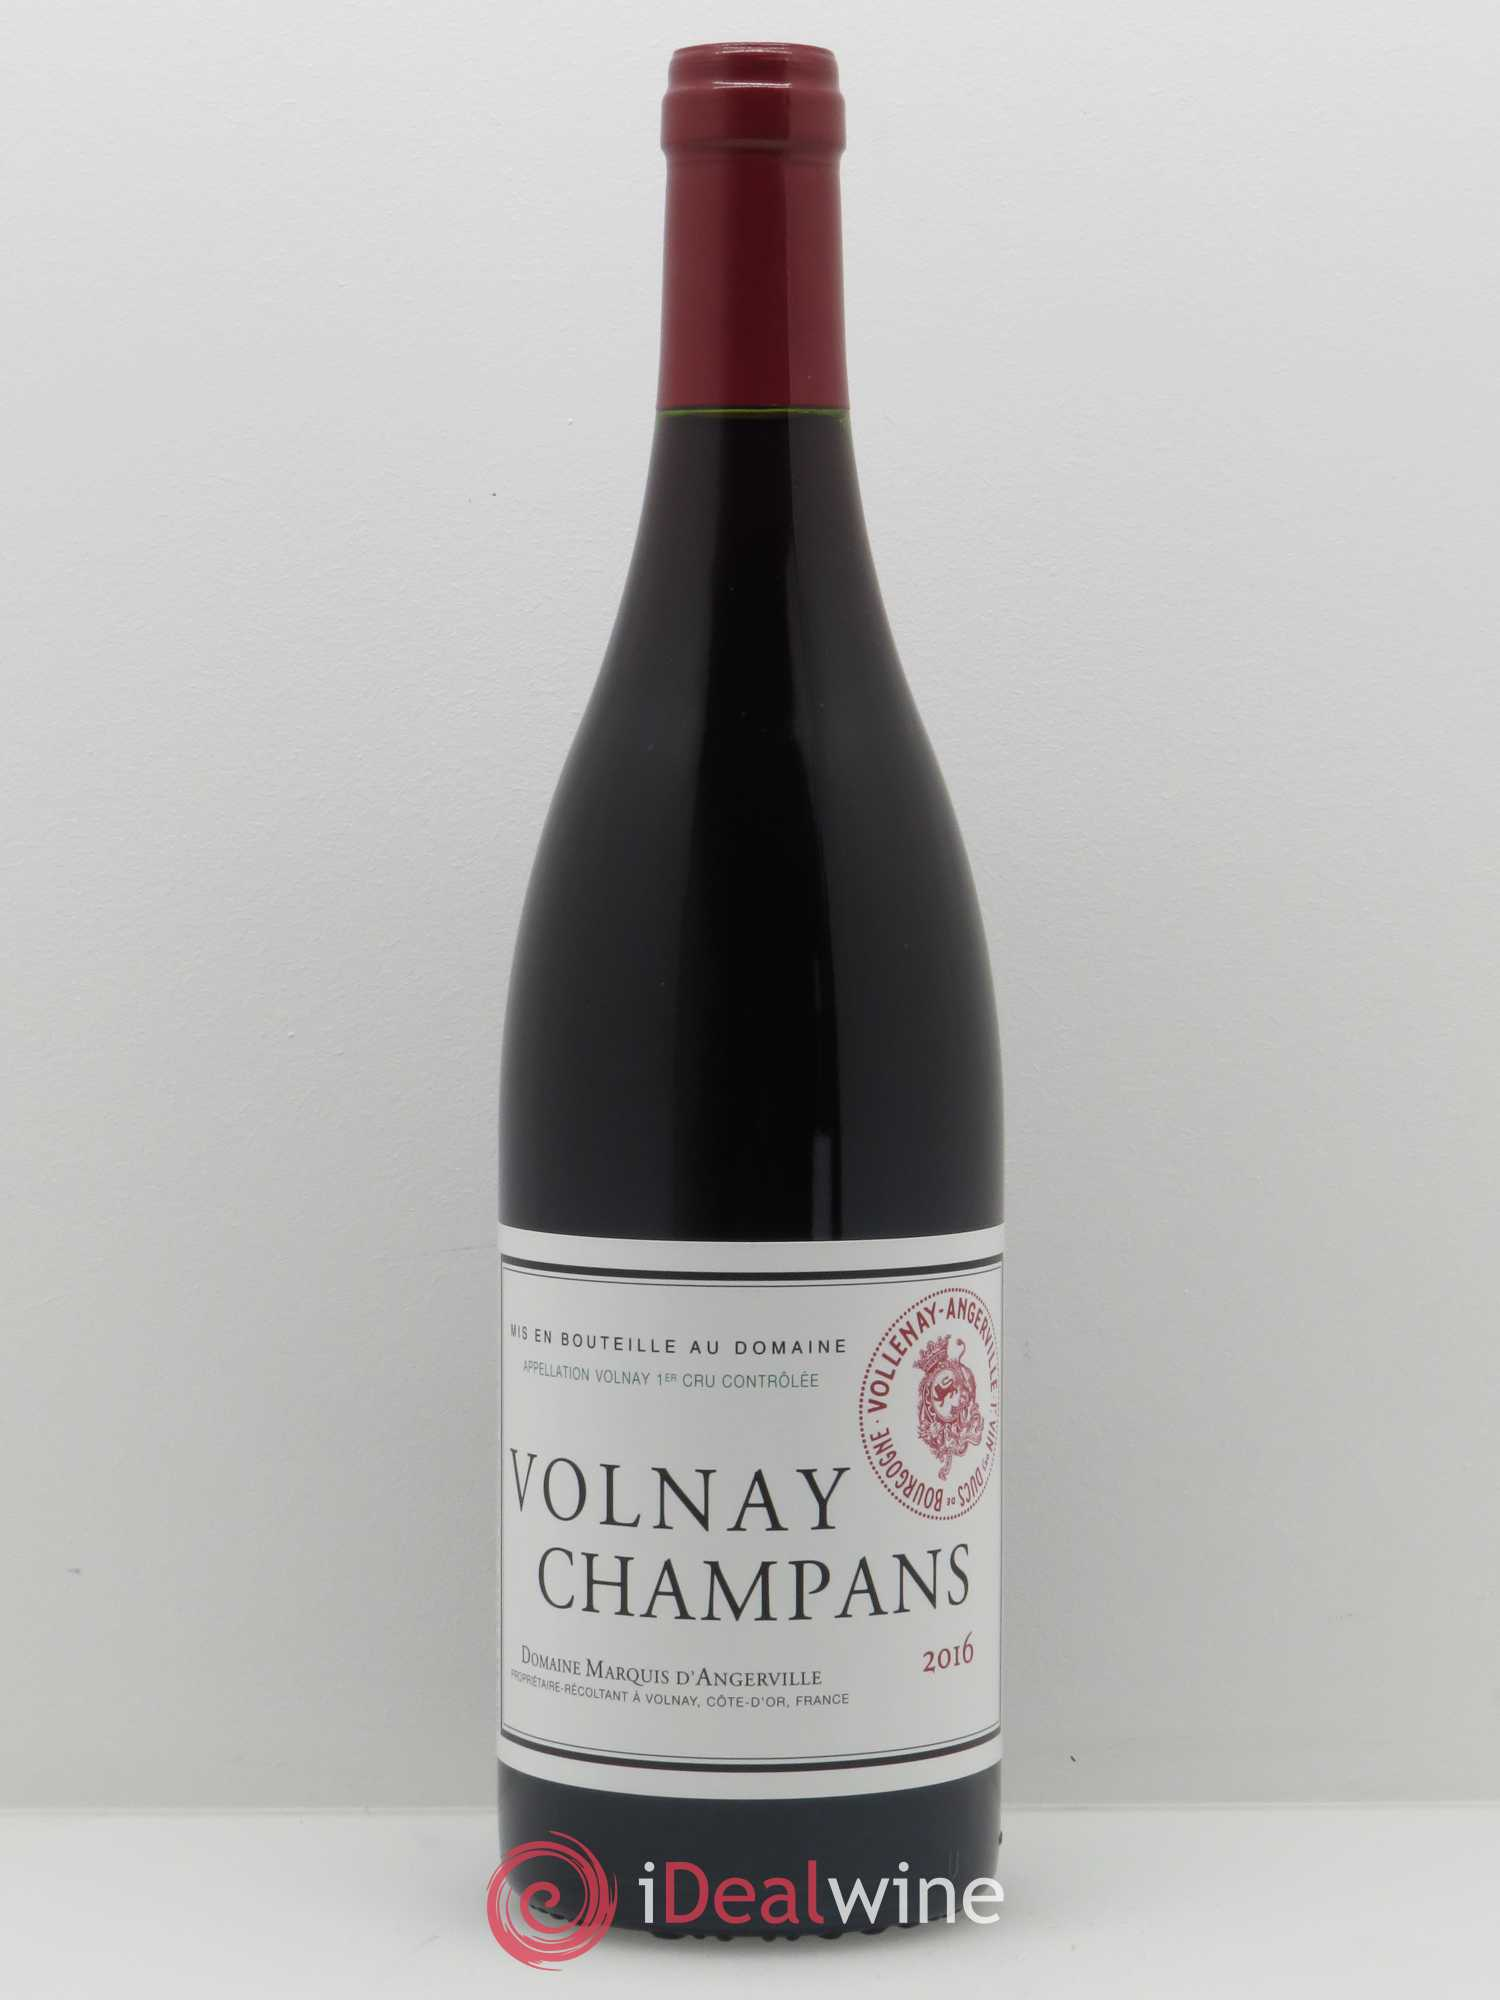 Volnay 1er Cru Champans Marquis d'Angerville (Domaine)